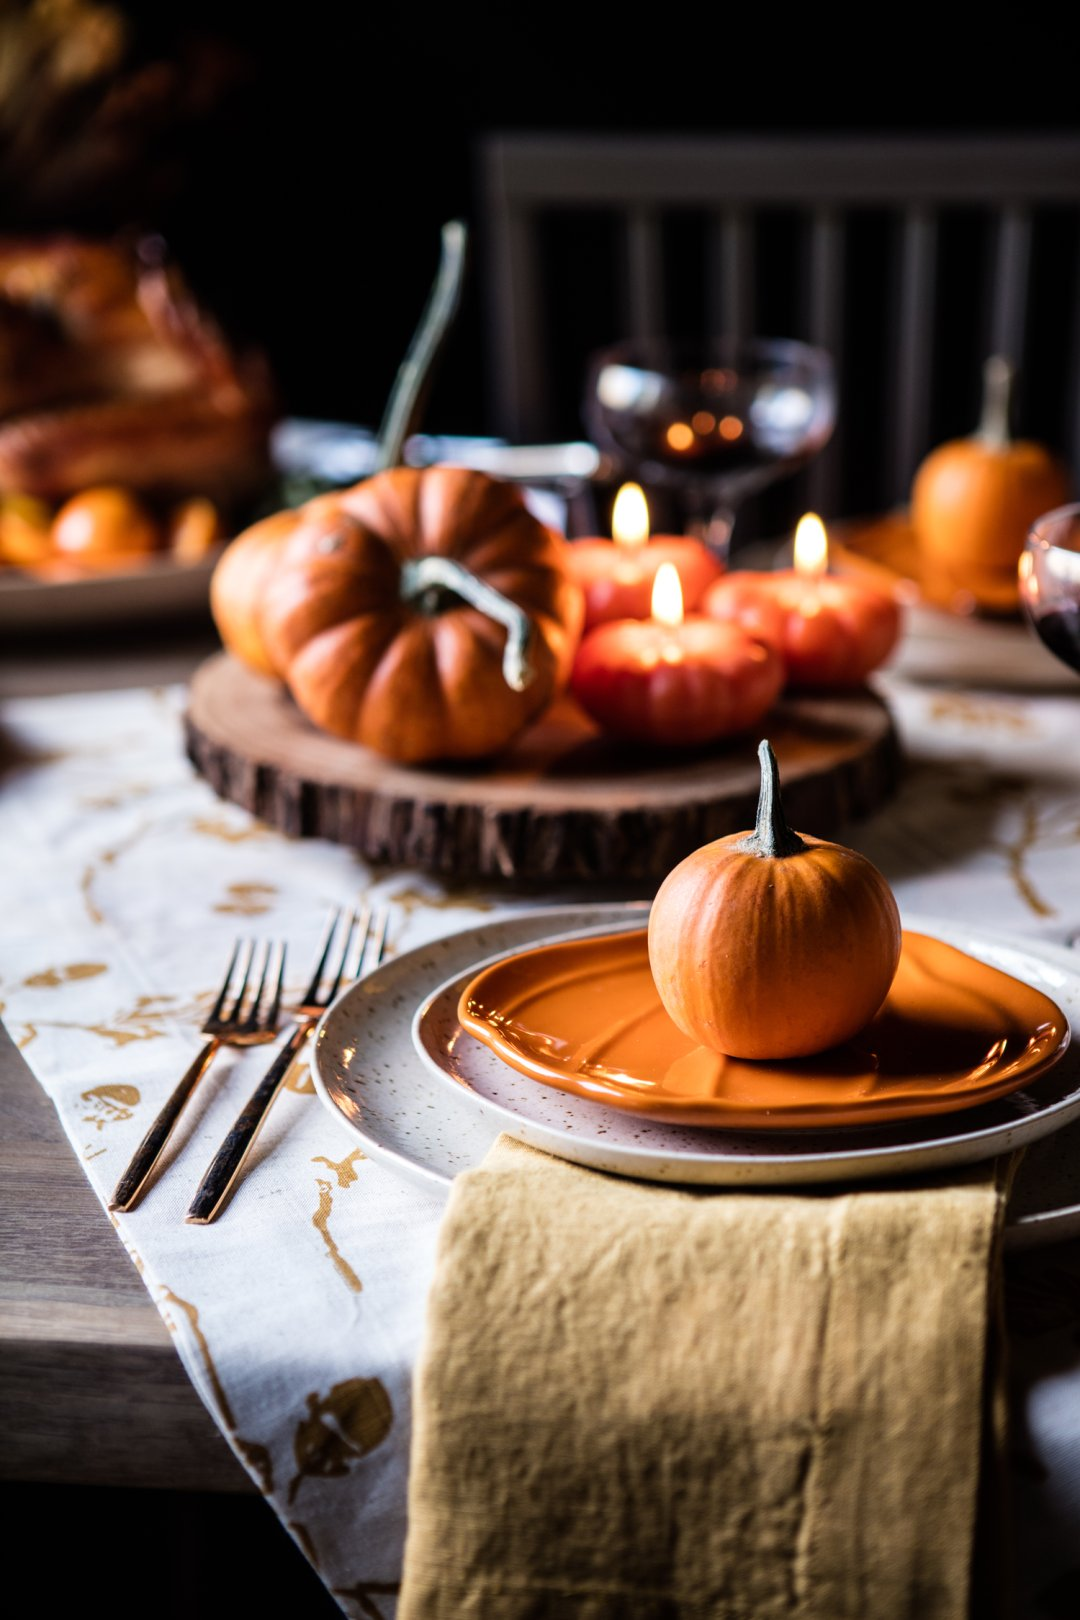 Thanksgiving place setting topped off with a small decorative pumpkin